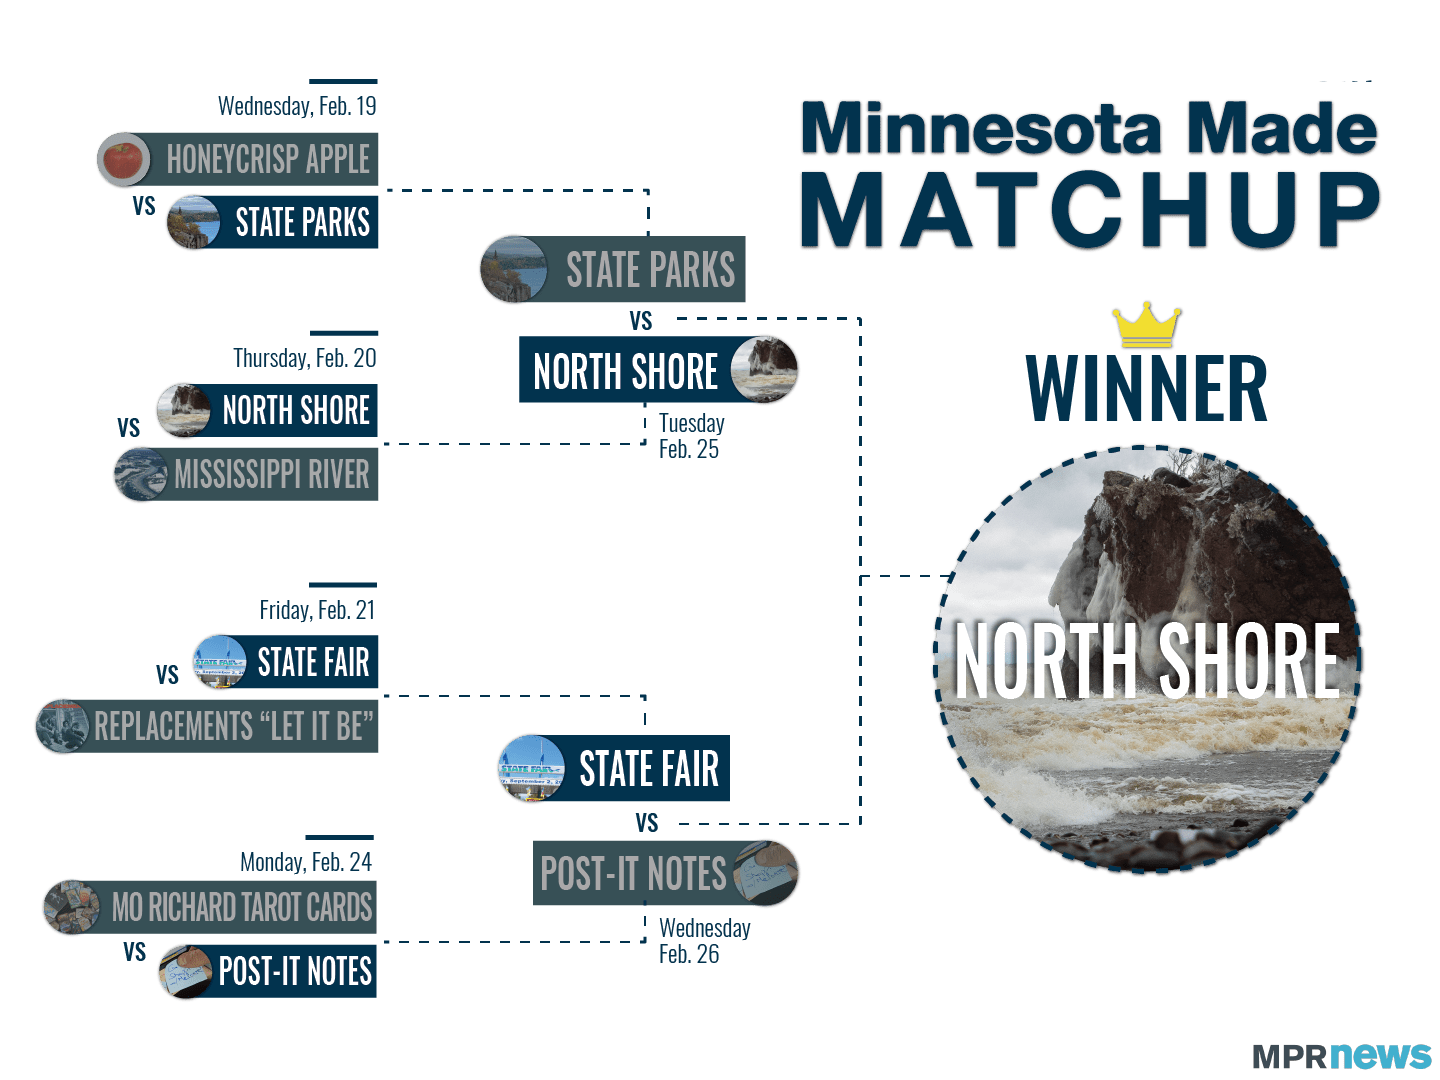 The North Shore is the winner of the Minnesota Made Matchup